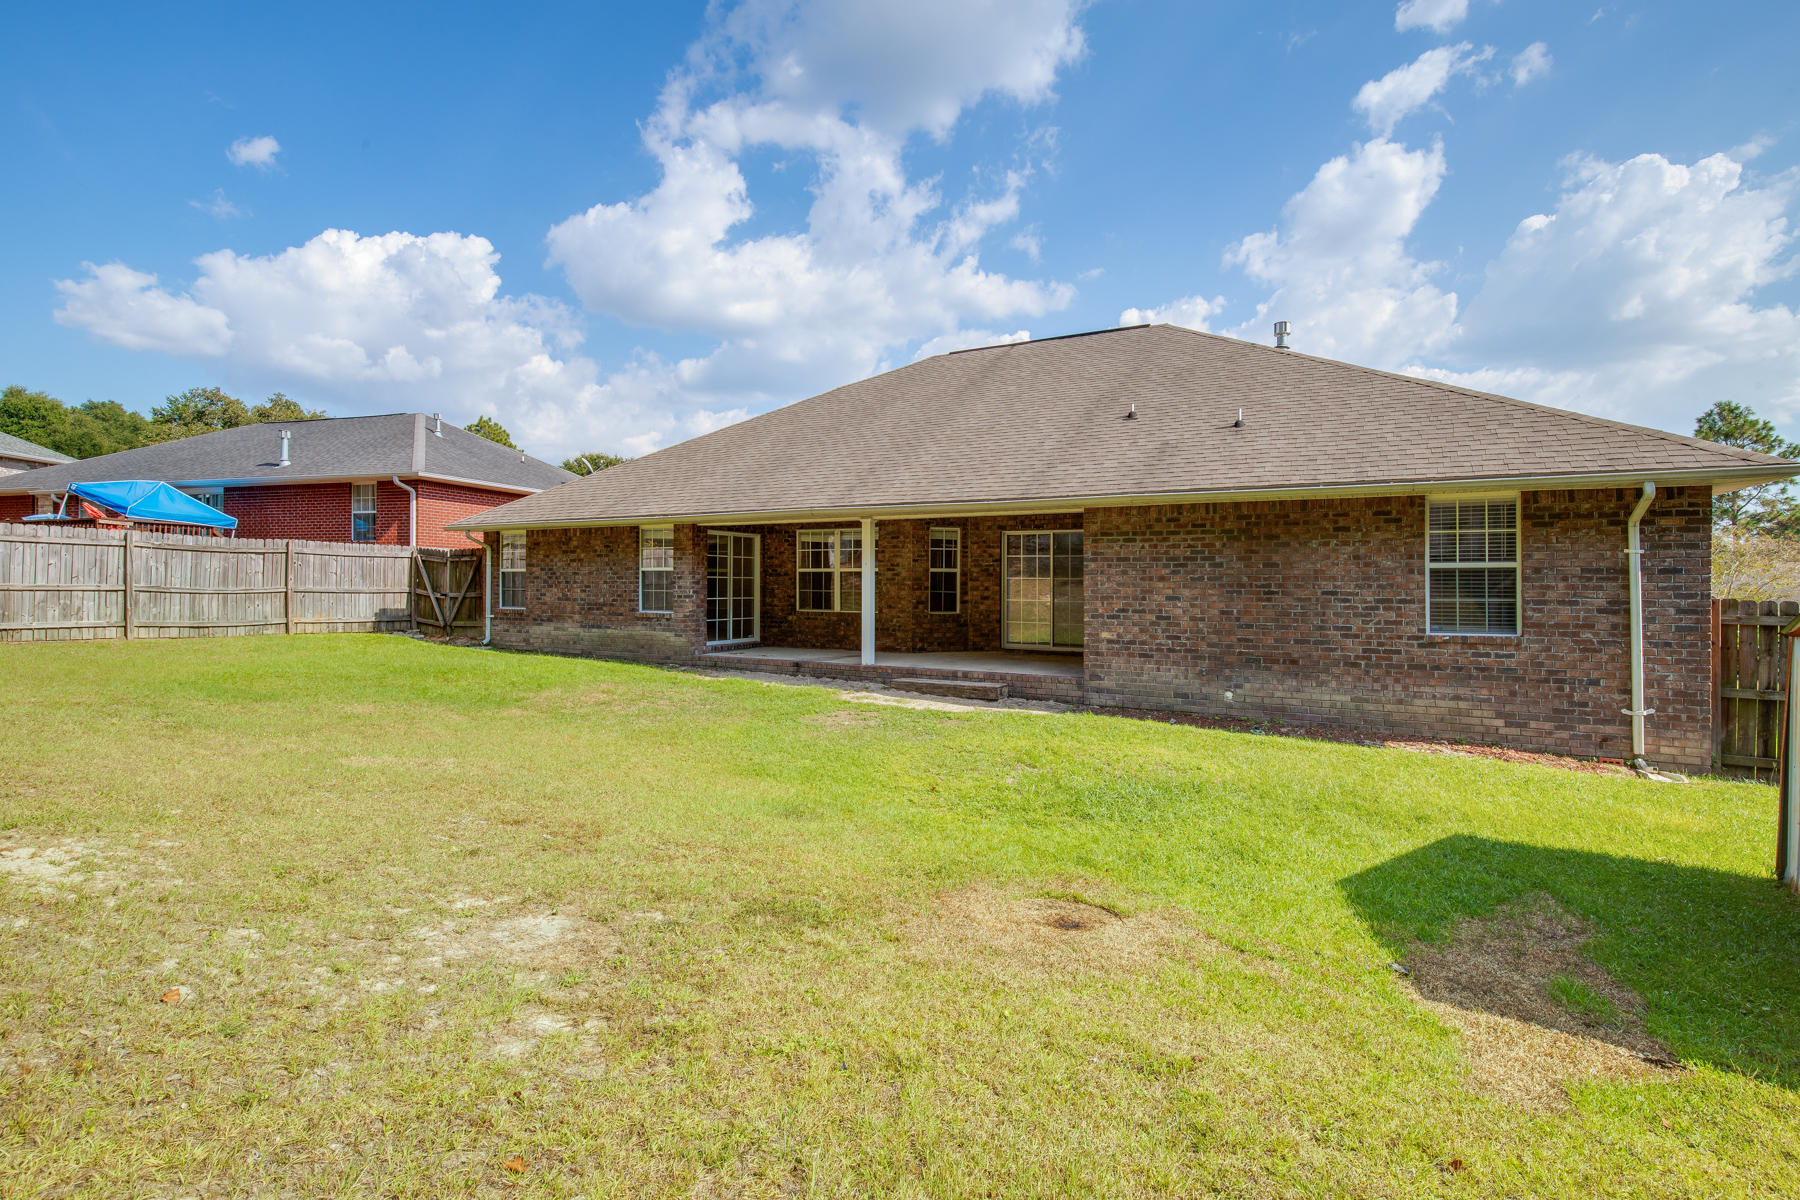 Photo of home for sale at 649 Territory, Crestview FL